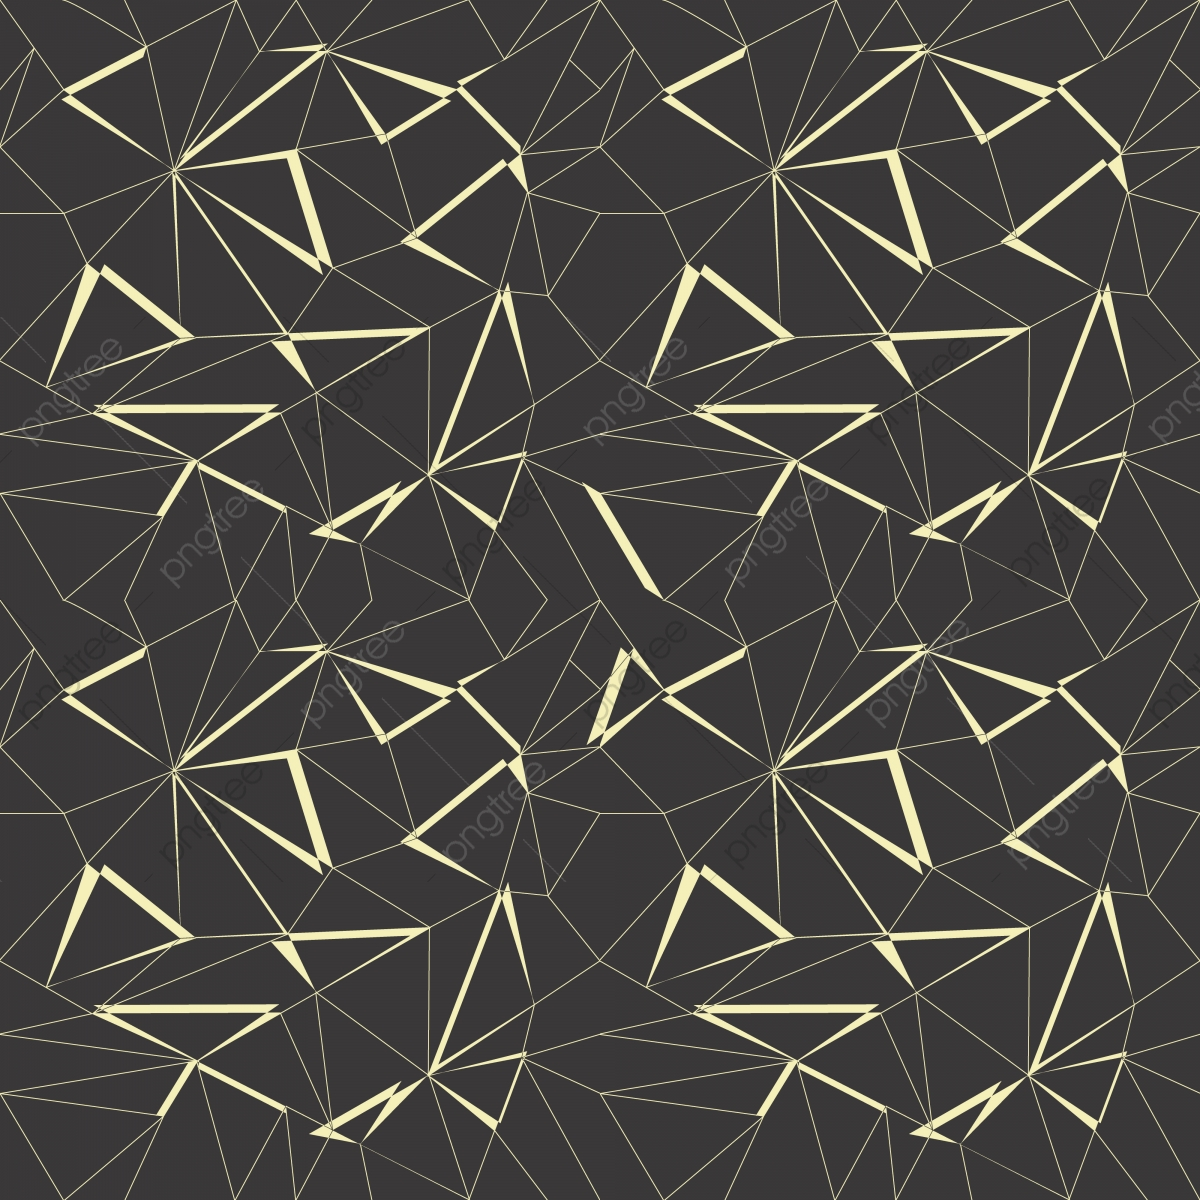 Abstract Geometric Pattern Background With Black And Gold Color Pattern Background Geometric Abstract Png And Vector With Transparent Background For Free Download,Pid Controller Design Tuning Parameters And Simulation For 4th Order Plant